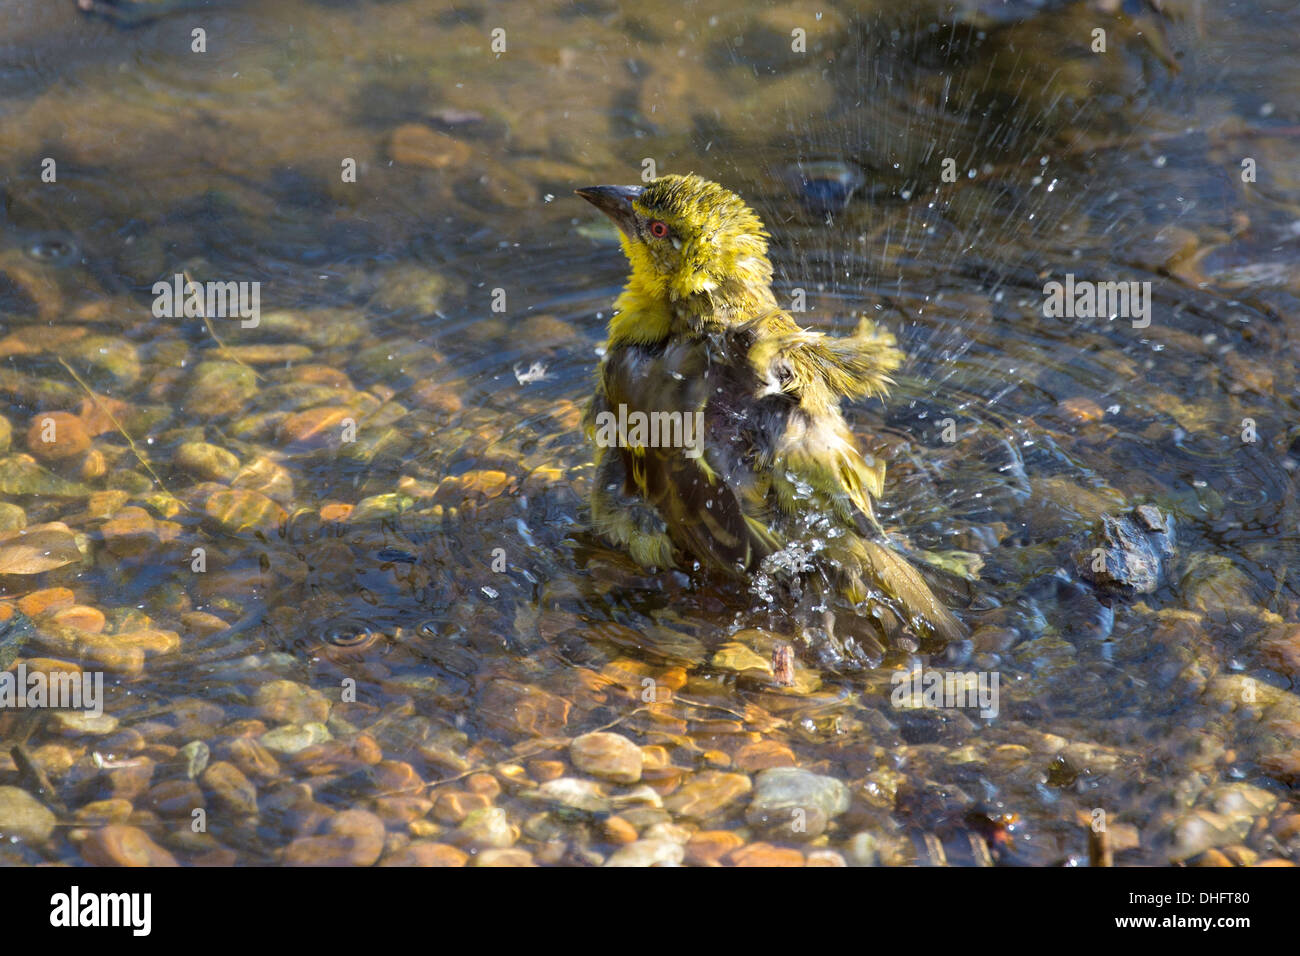 Female Black-headed Weaver having a bath - Stock Image